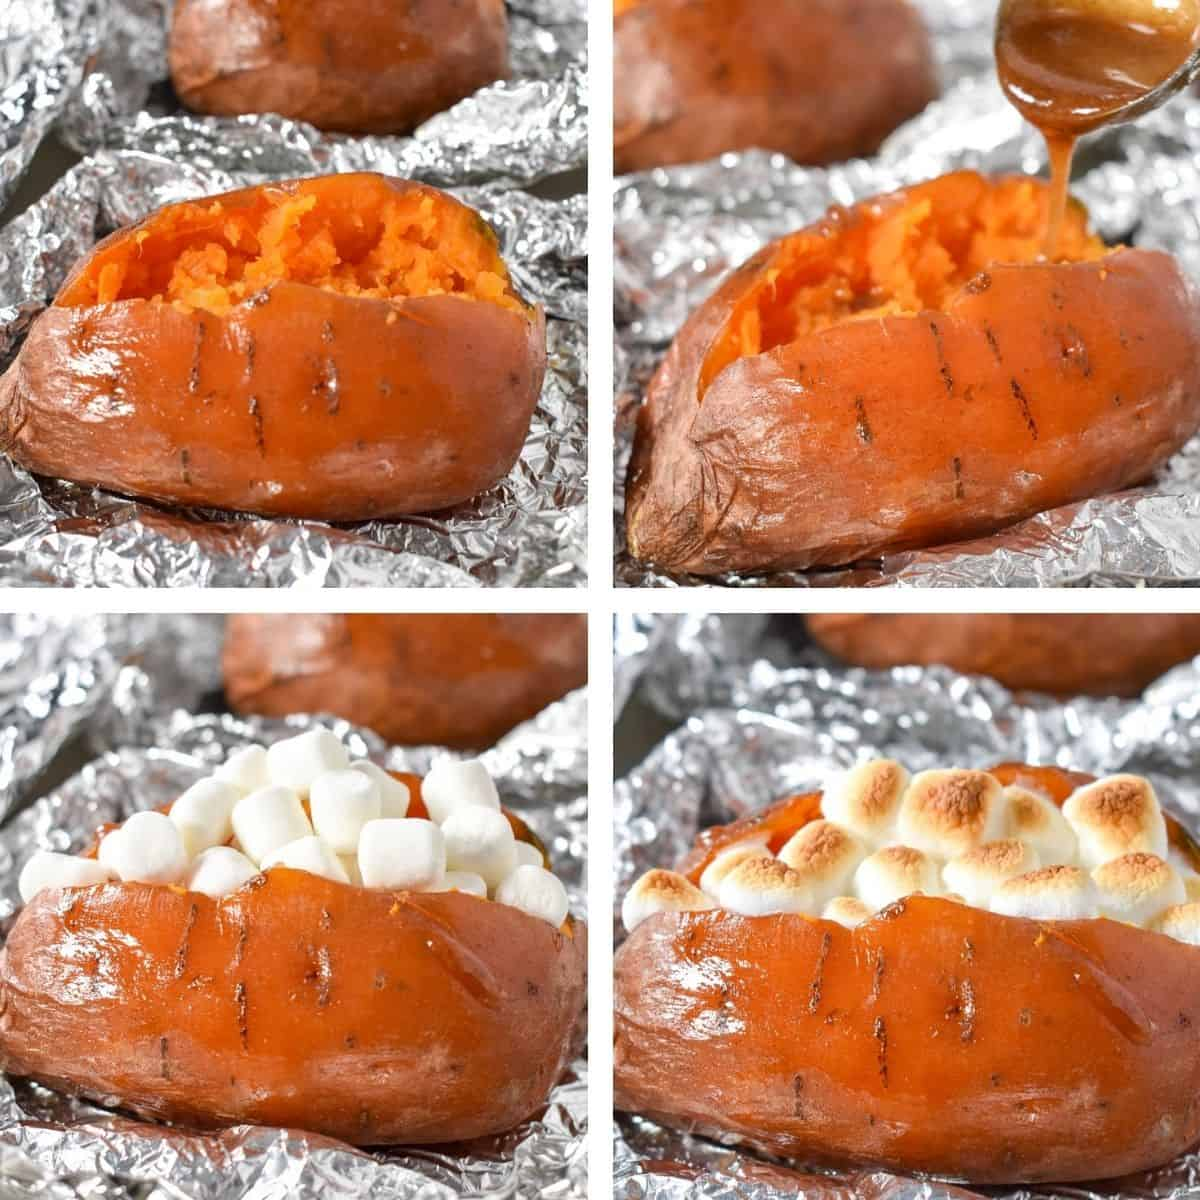 A collage of four images showing the process of making the loaded sweet potato, from fluffing the flesh to a final image with toasted marshmallows.